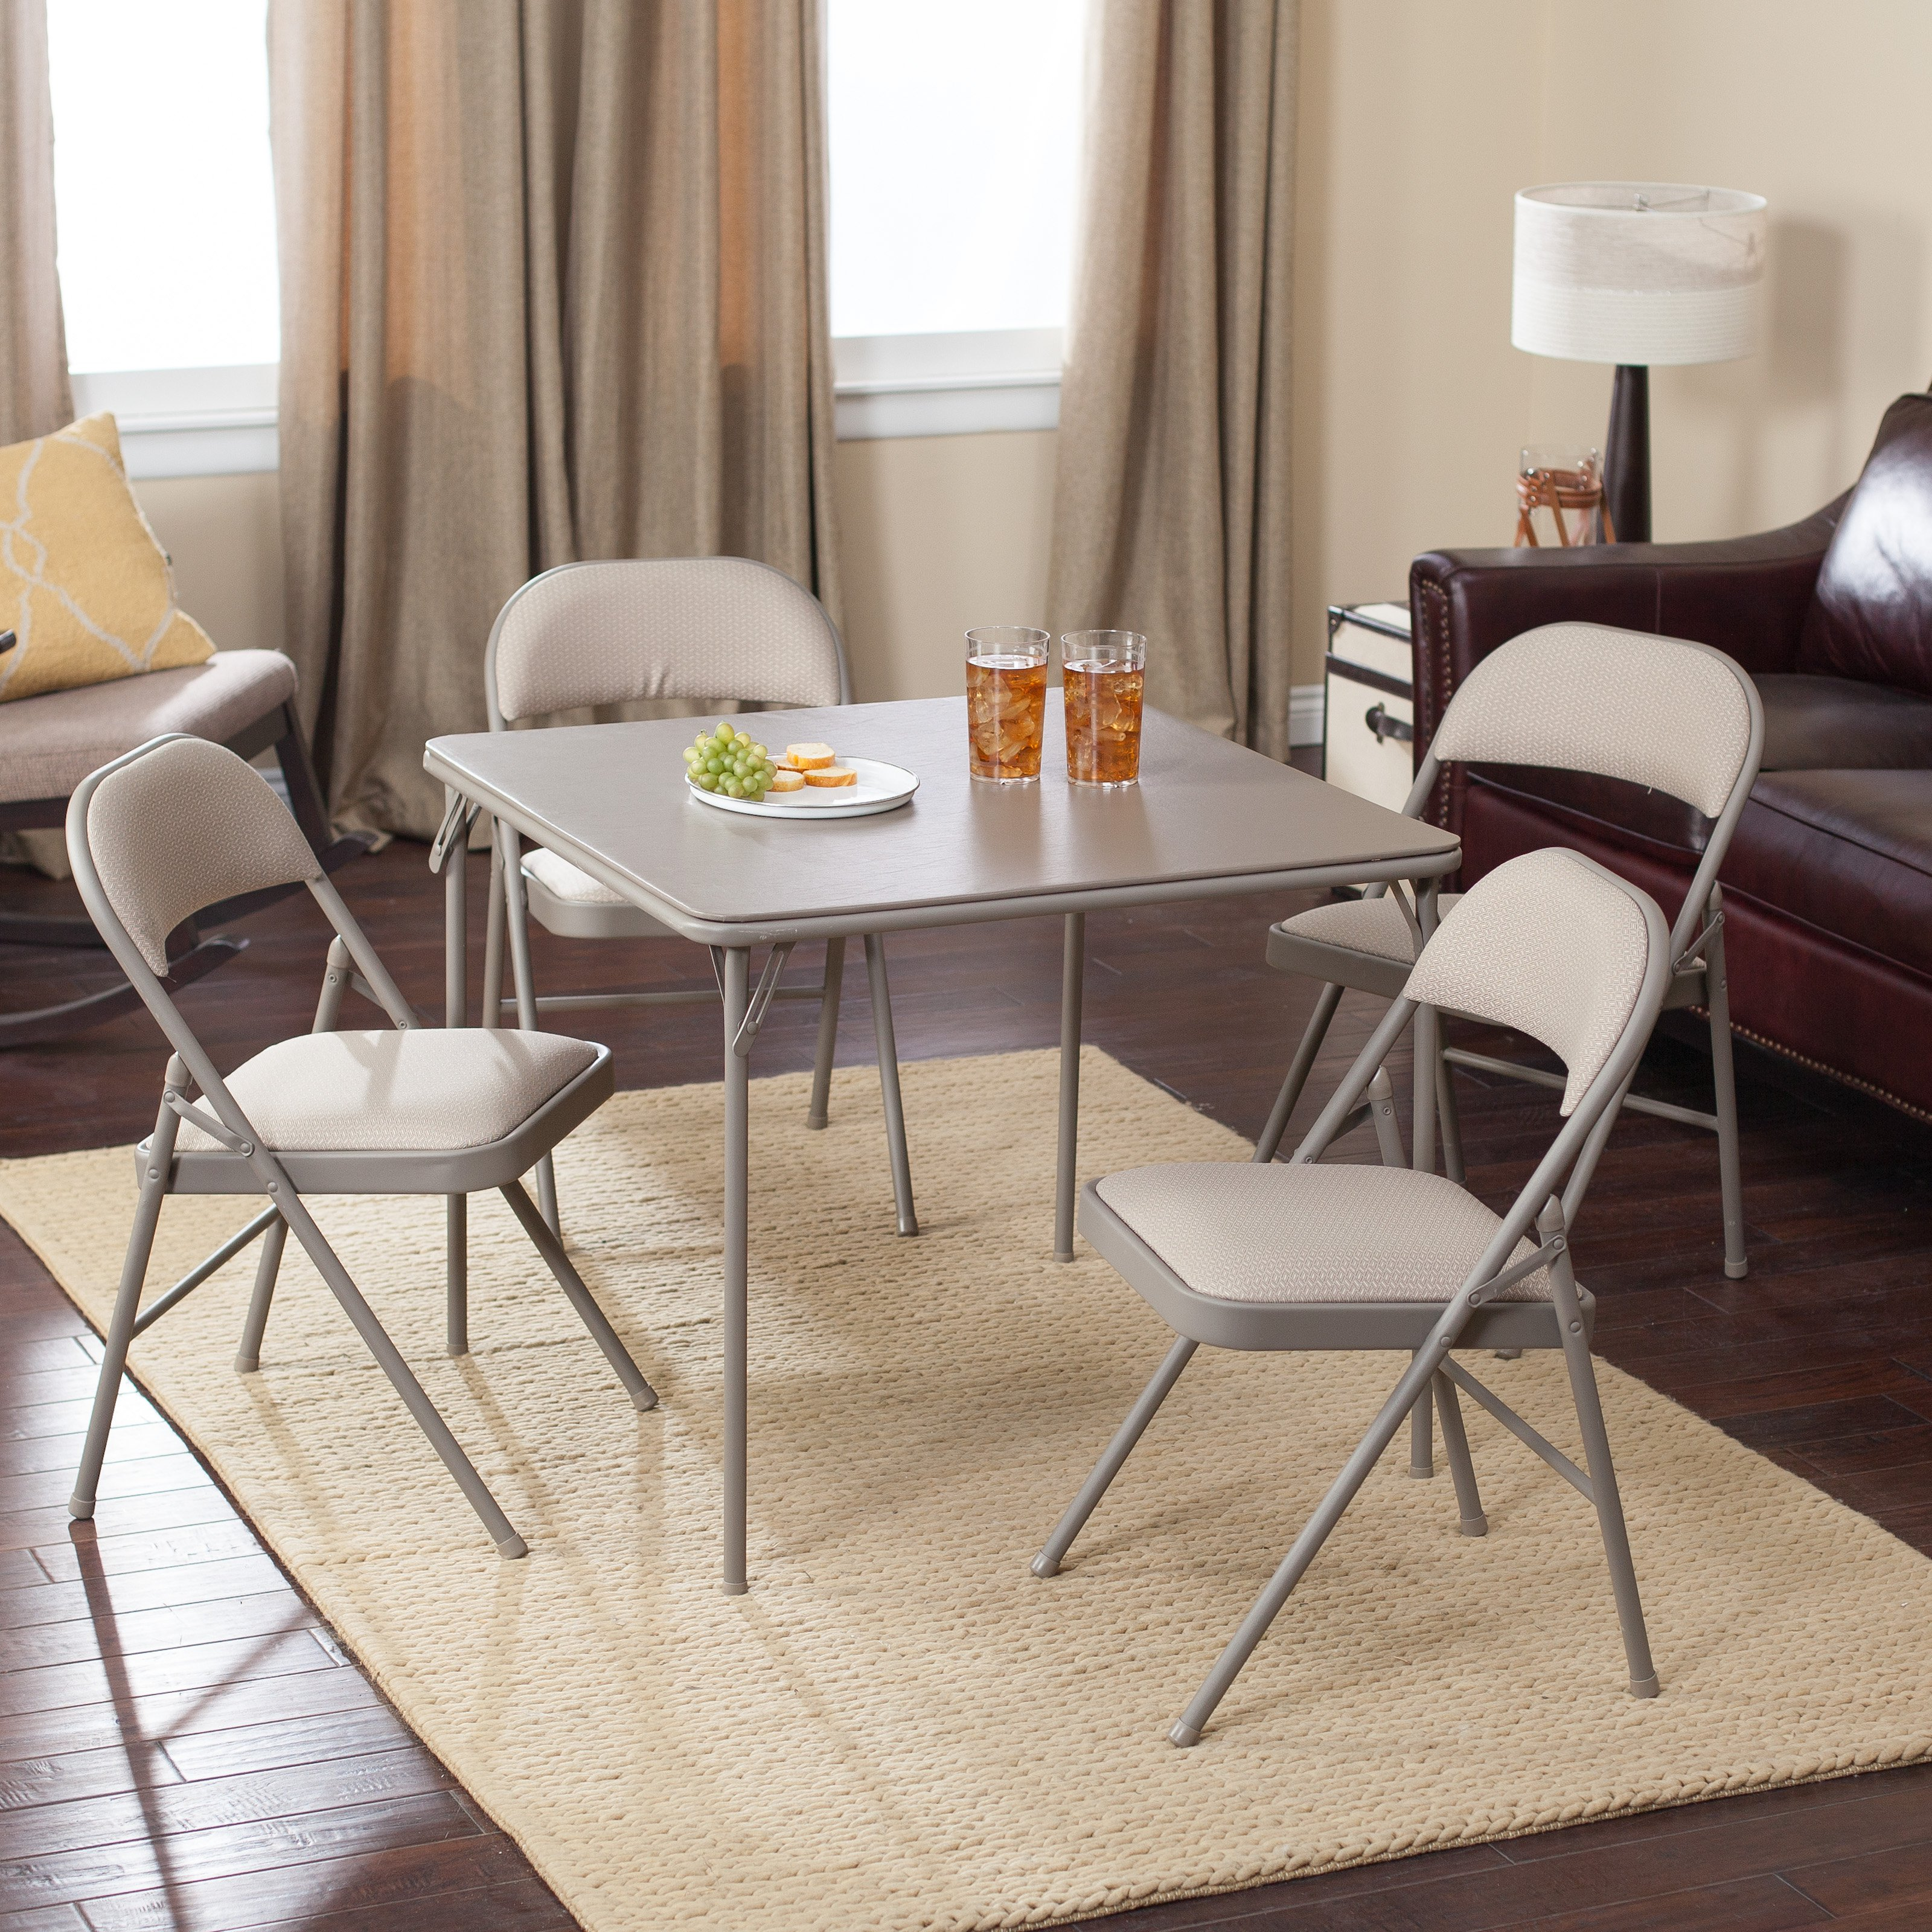 Awesome Meco Sudden Comfort Deluxe Double Padded Chair And Back   5 Piece Card  Table Set